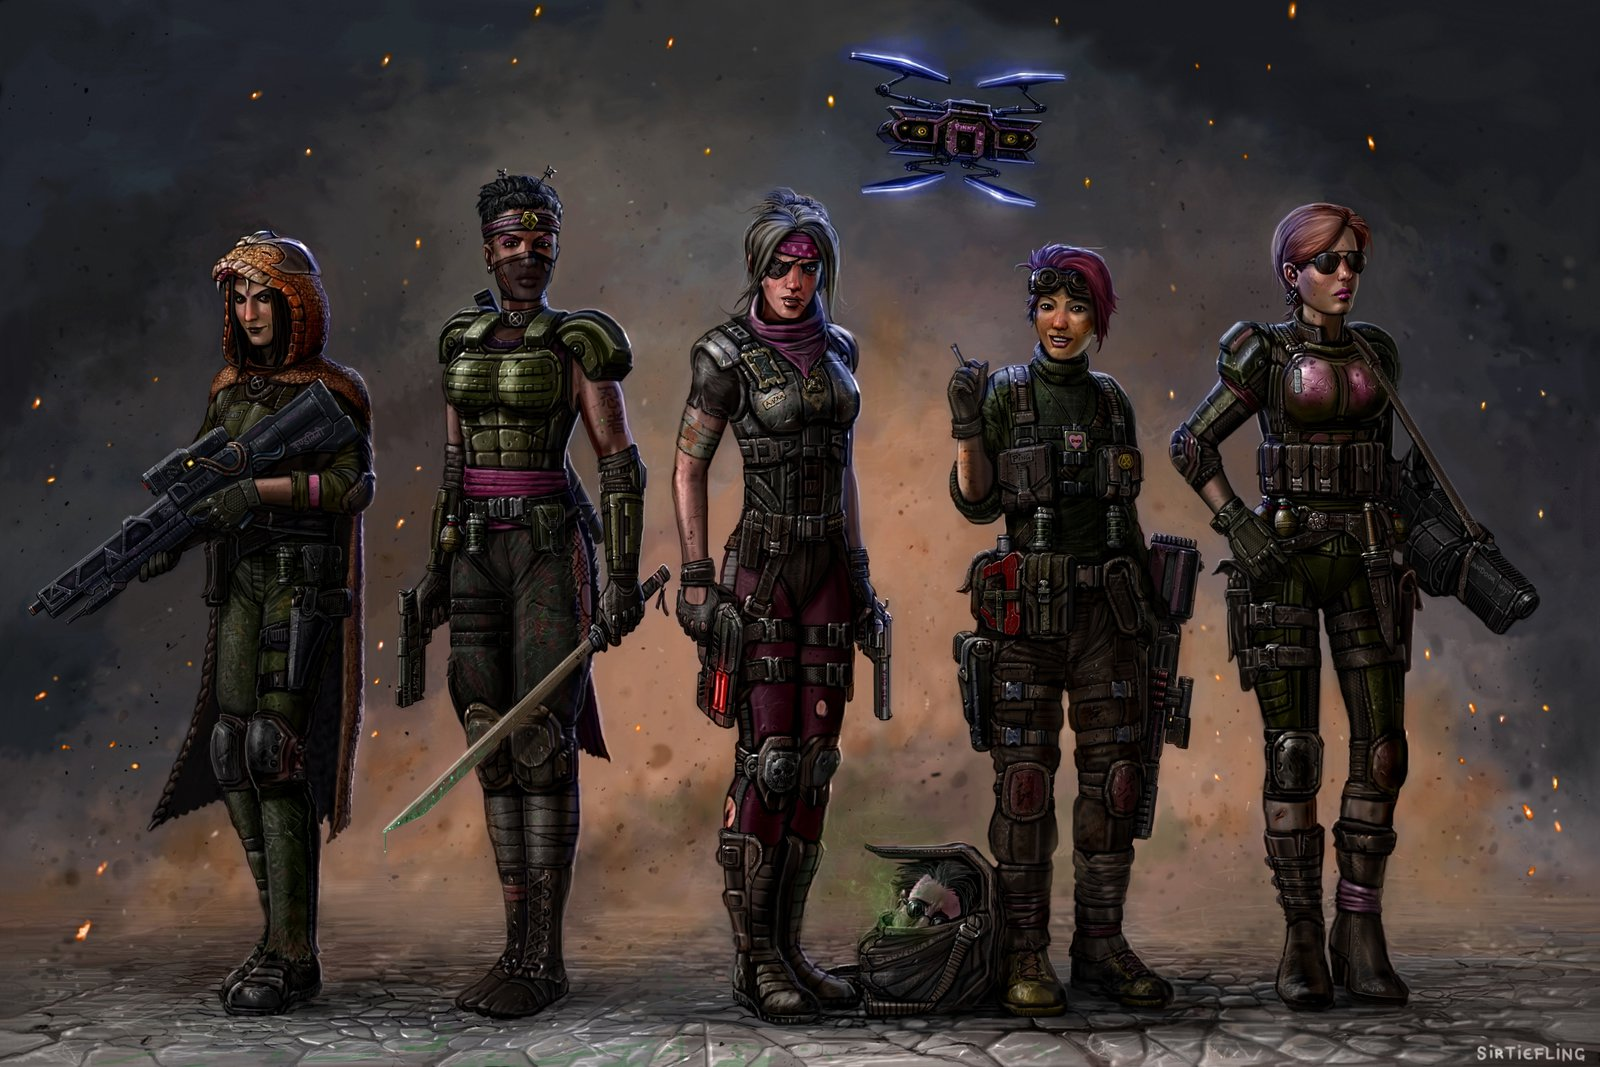 XCOM2 - The Pink Squad 2035 (by SirTiefling).jpg